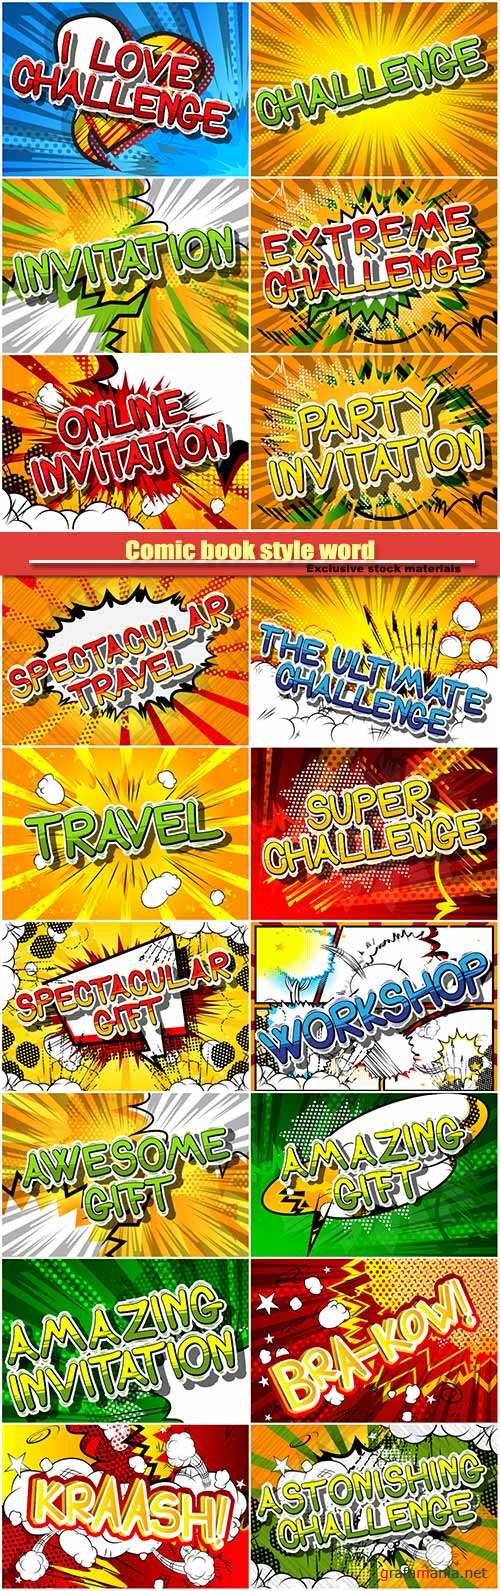 Comic book style word on abstract vector background